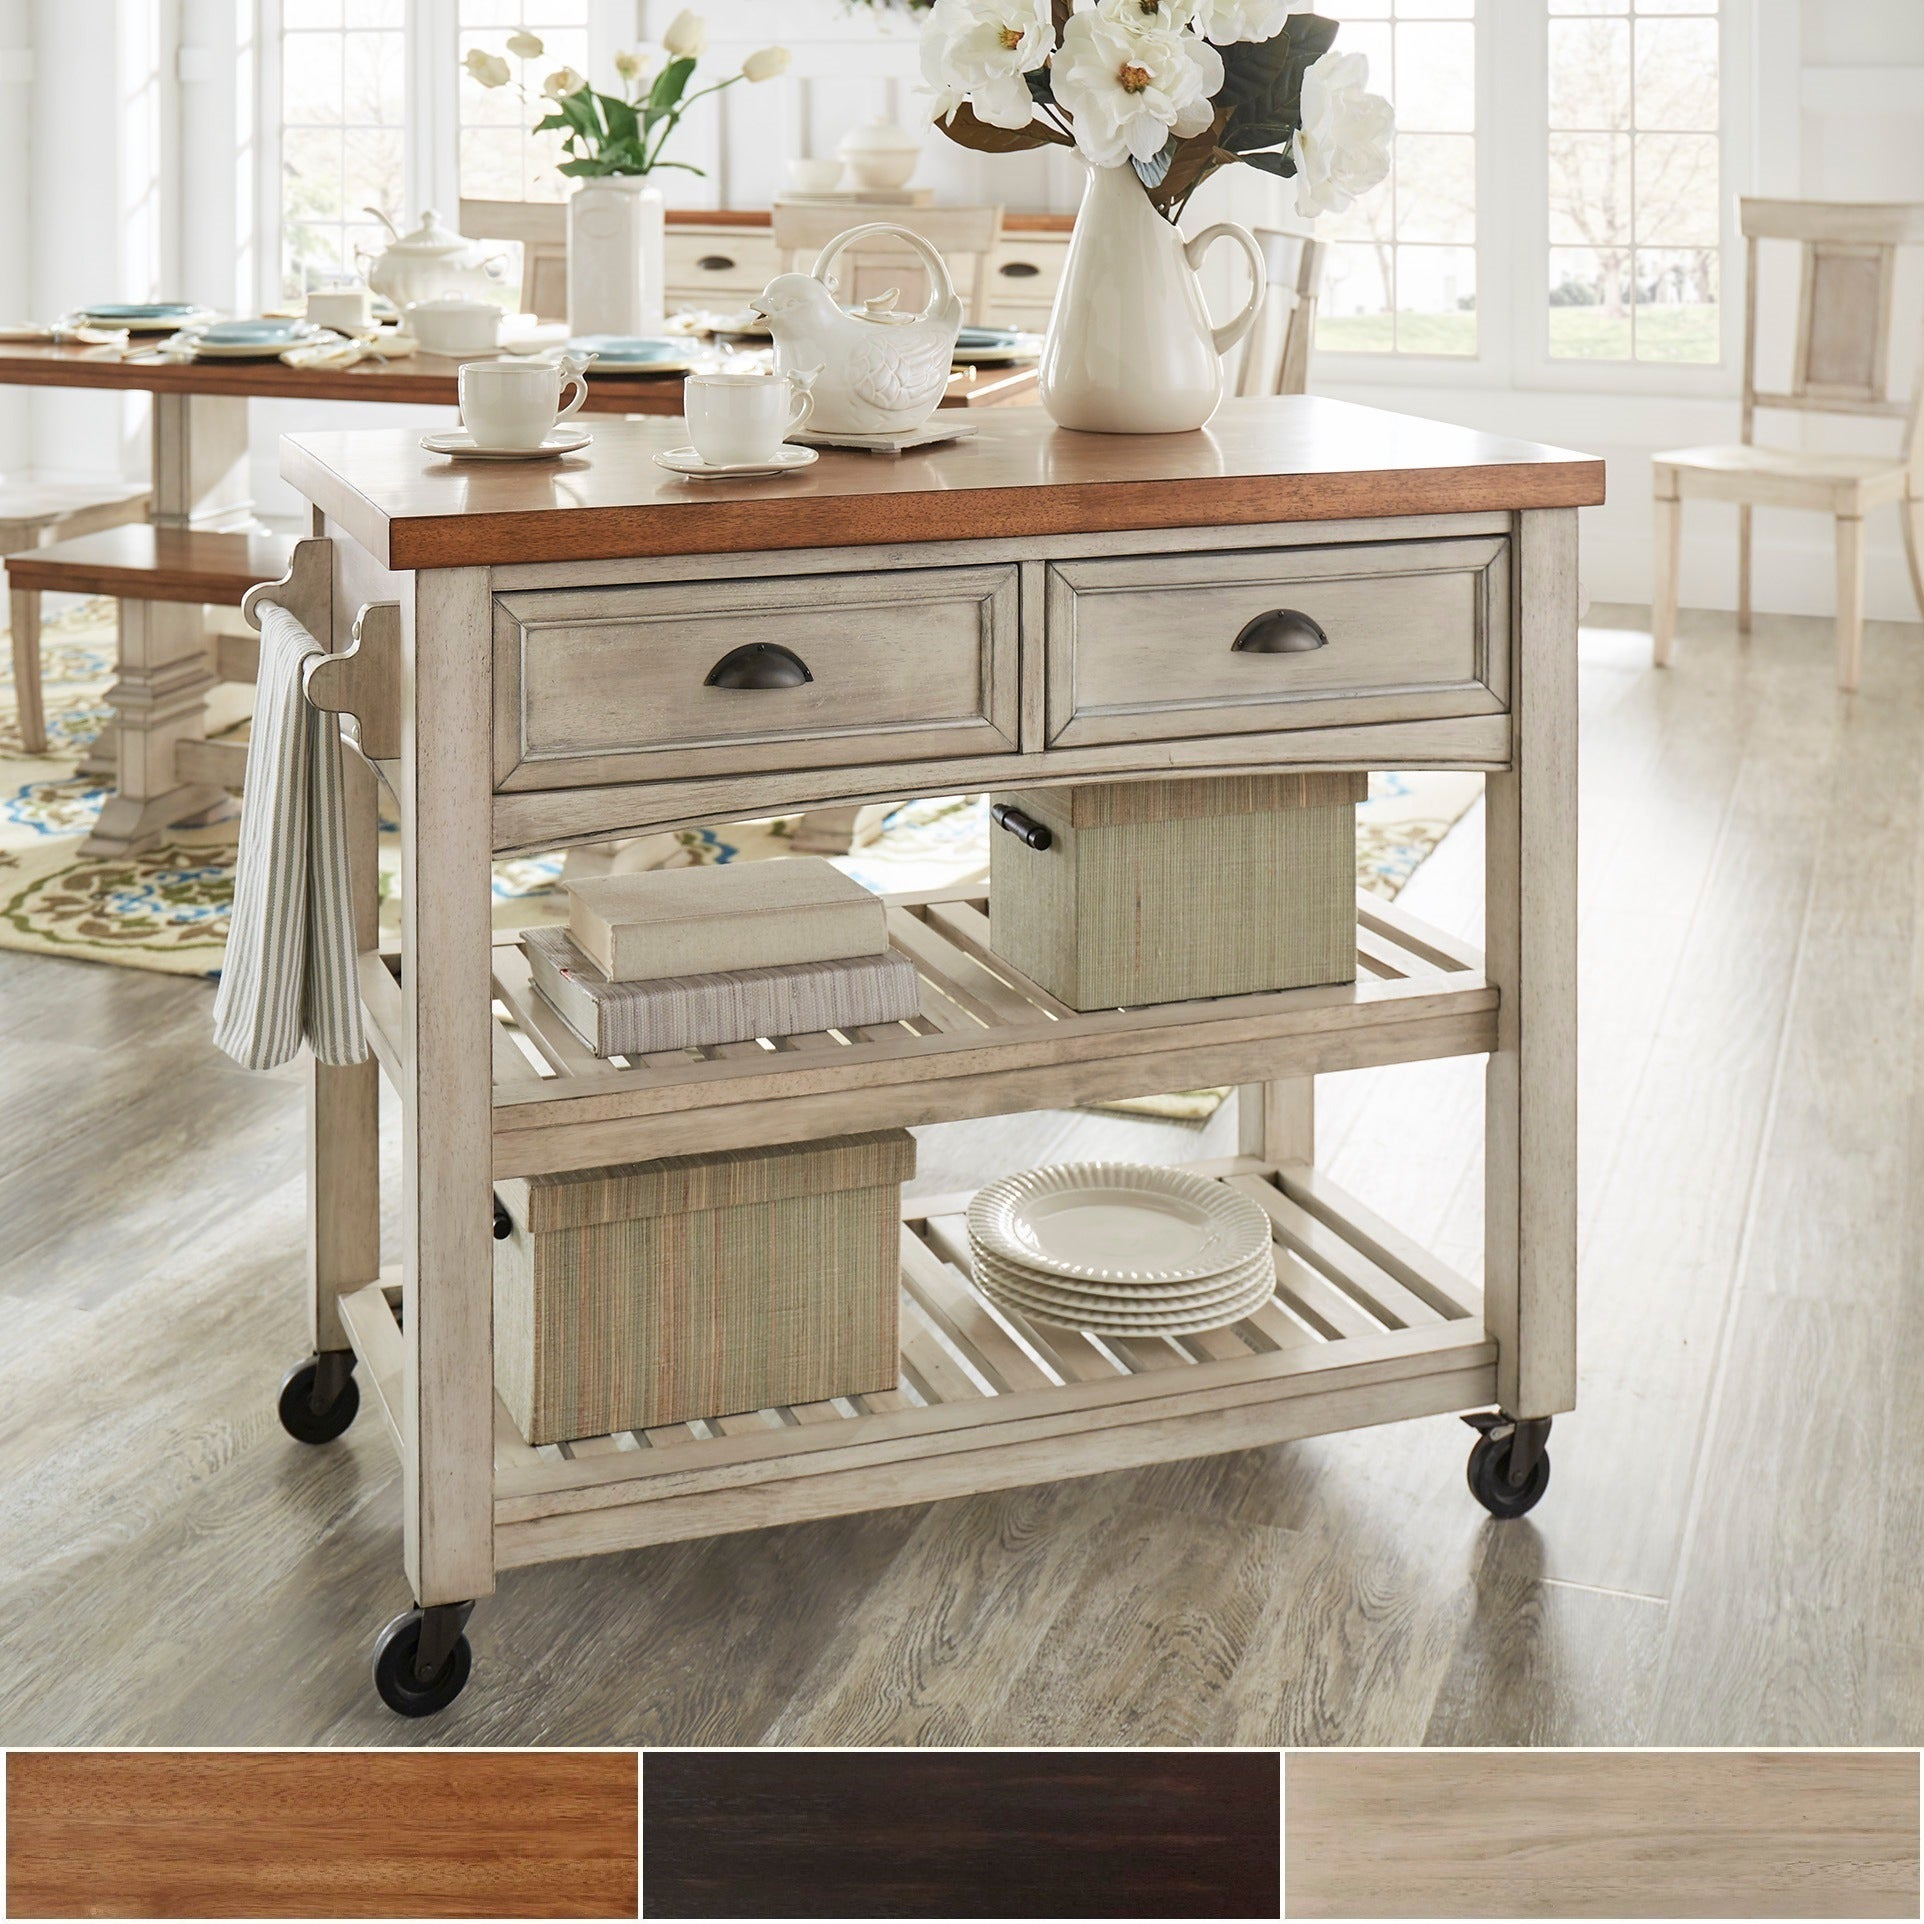 Shop eleanor two tone rolling kitchen island by inspire q classic on sale free shipping today overstock com 13840583